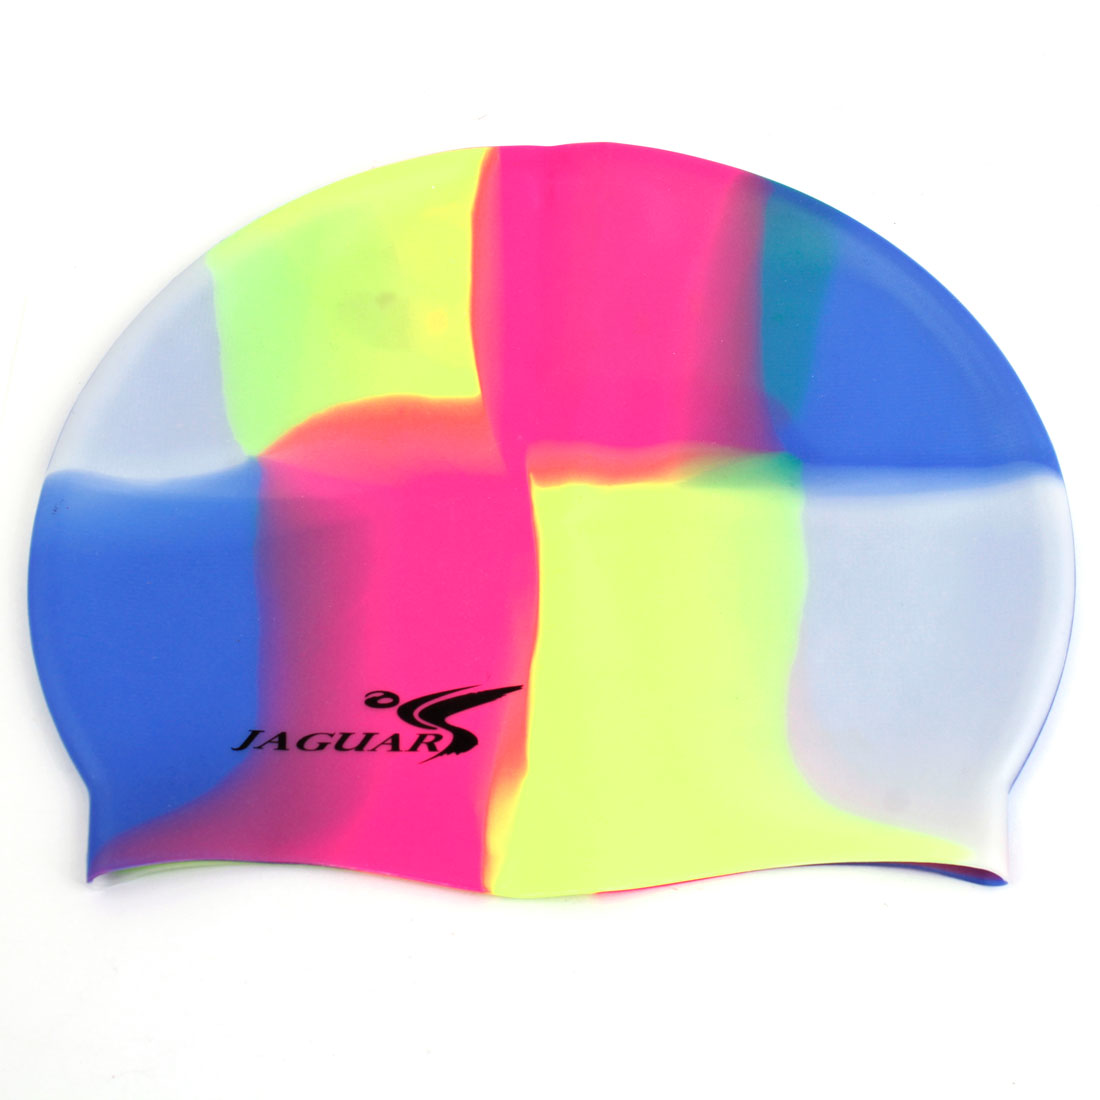 Dome Shaped Colorful Elastic Silicone Swimming Cap for Adults